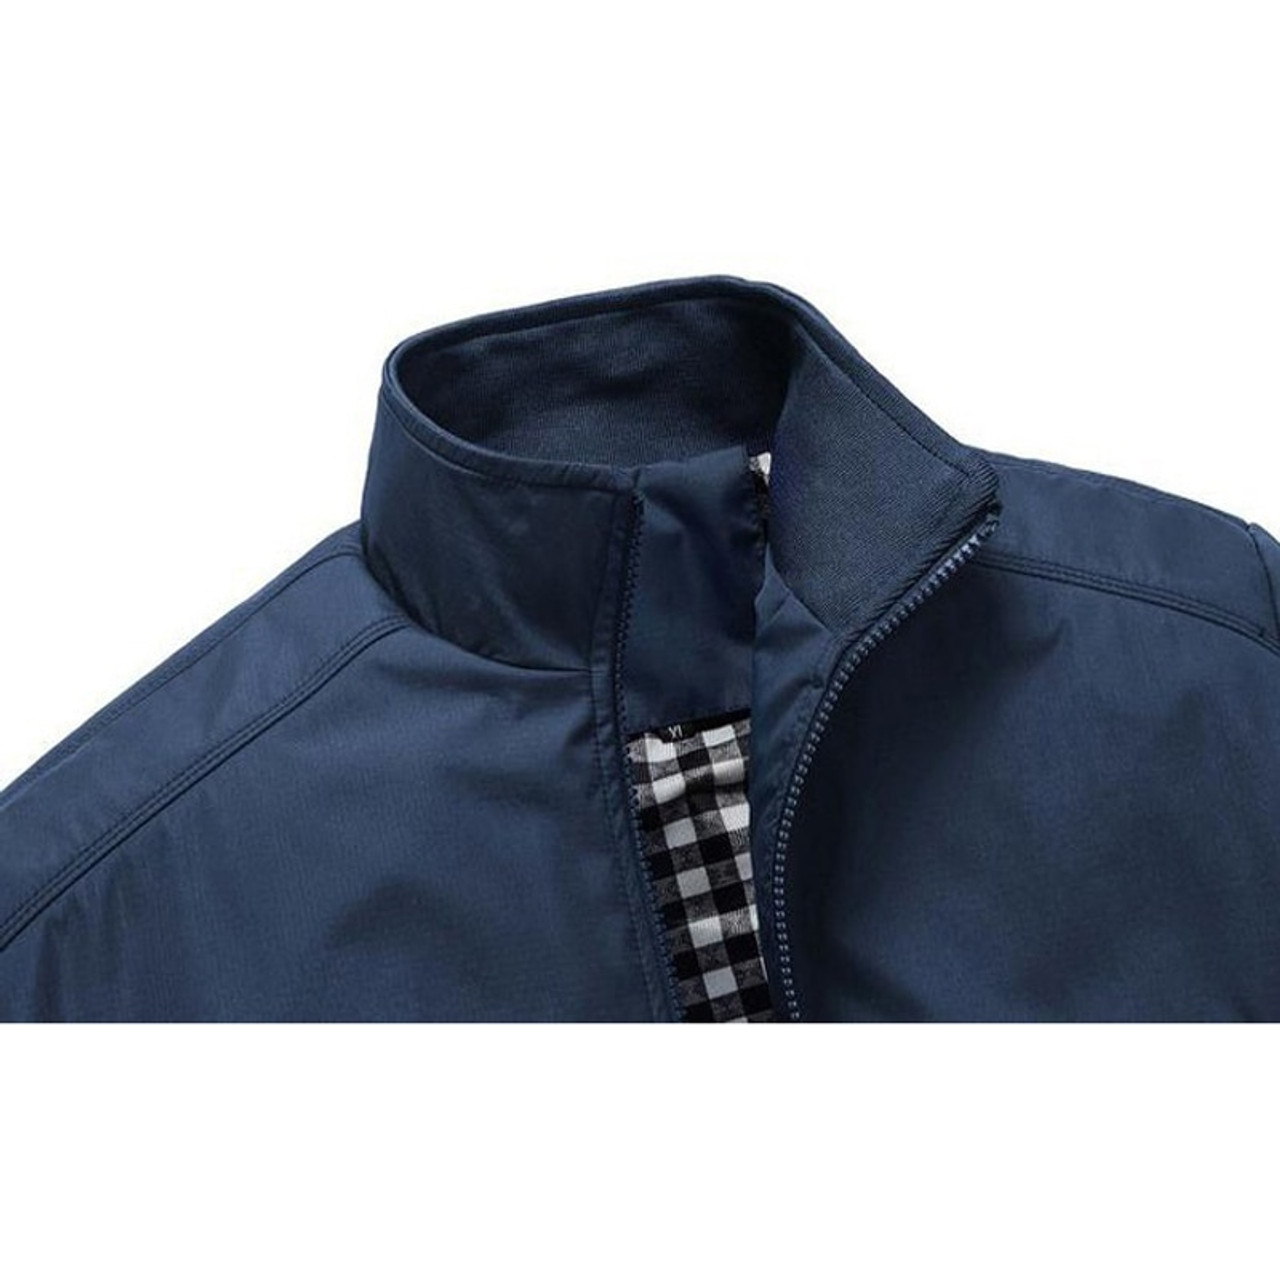 f0abd9858d3 ... TANGNEST Men s Jackets 2018 Men s New Casual Jacket High Quality Spring  Regular Slim Jacket Coat For ...